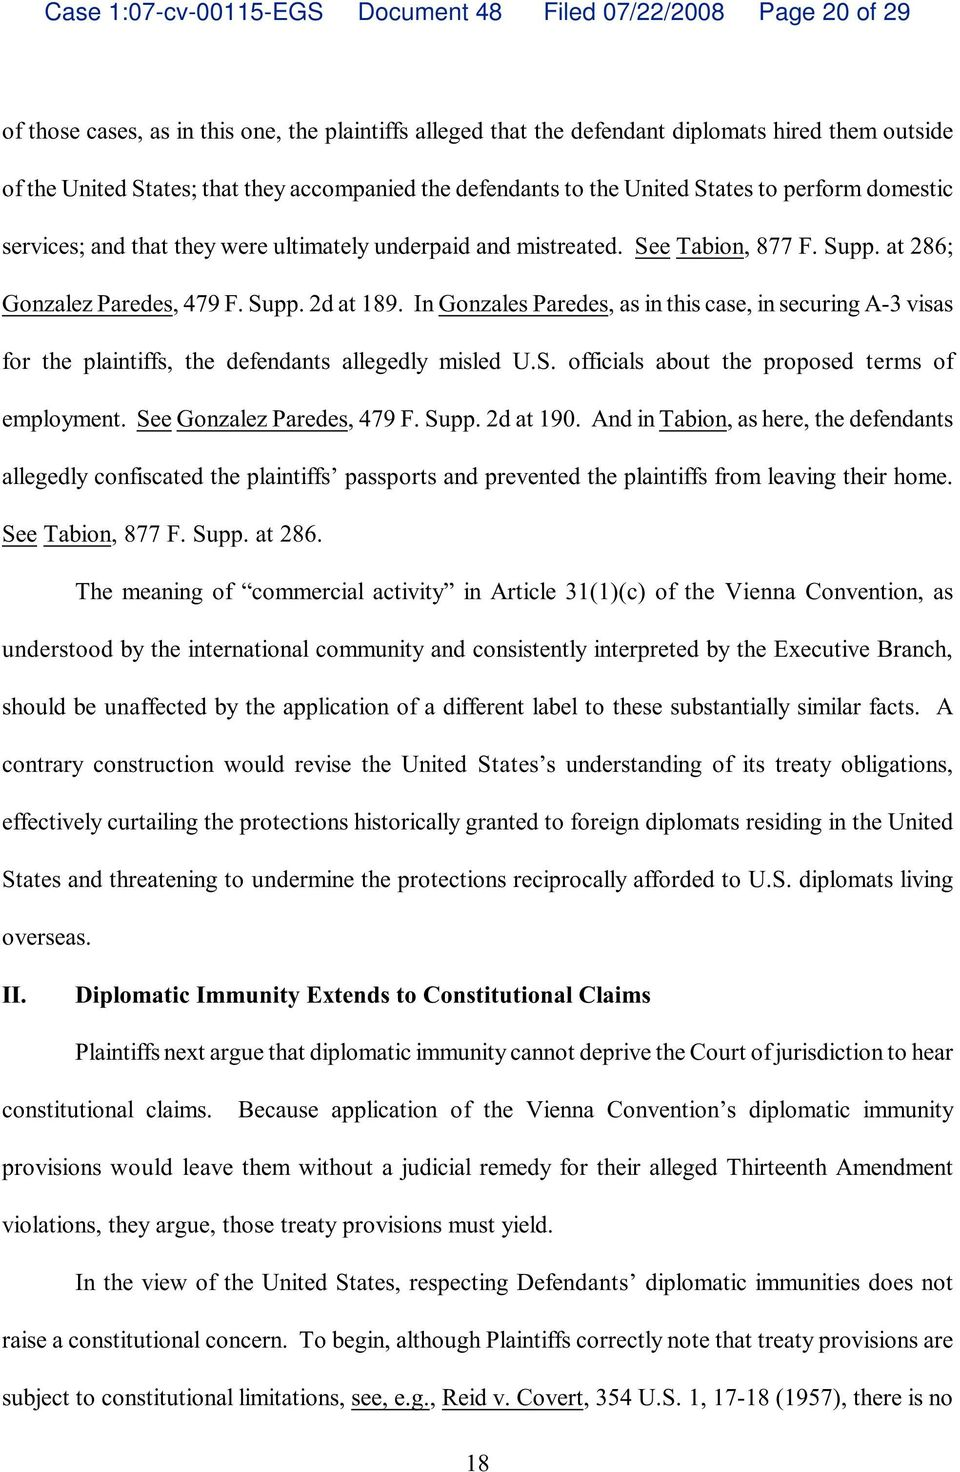 Supp. 2d at 189. In Gonzales Paredes, as in this case, in securing A-3 visas for the plaintiffs, the defendants allegedly misled U.S. officials about the proposed terms of employment.